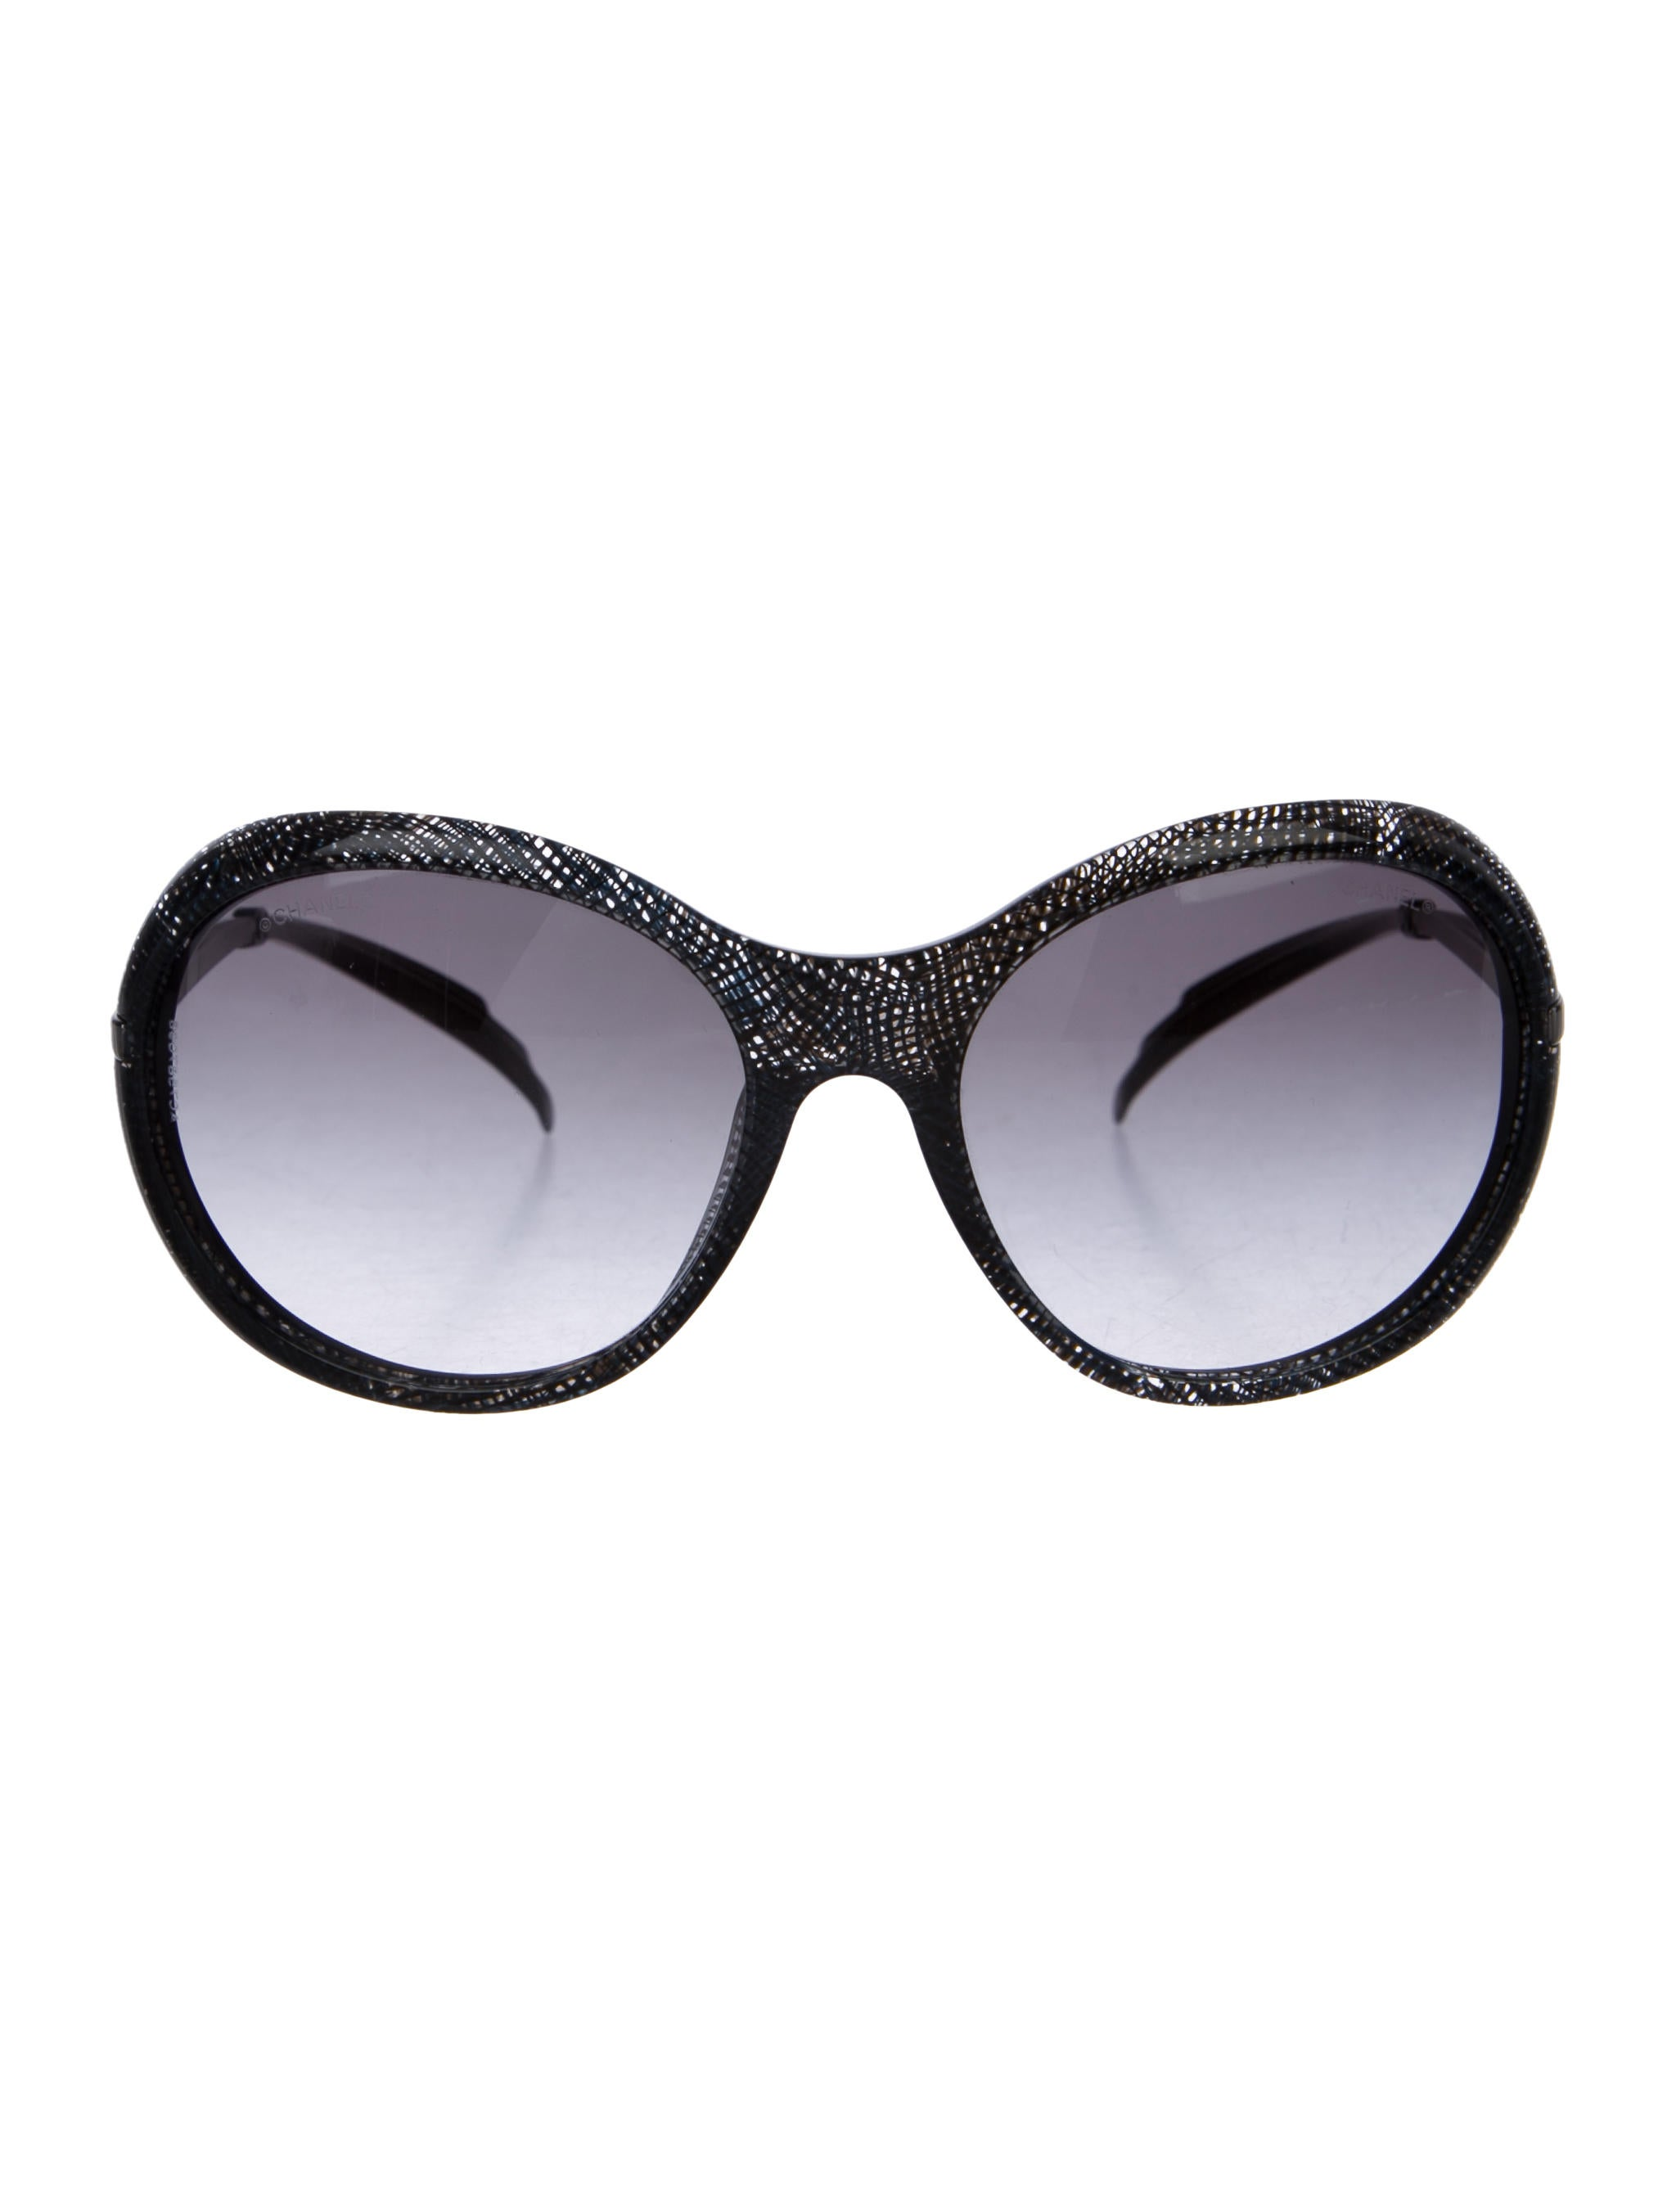 Chanel Gradient Round Sunglasses - Accessories - CHA280653 ...